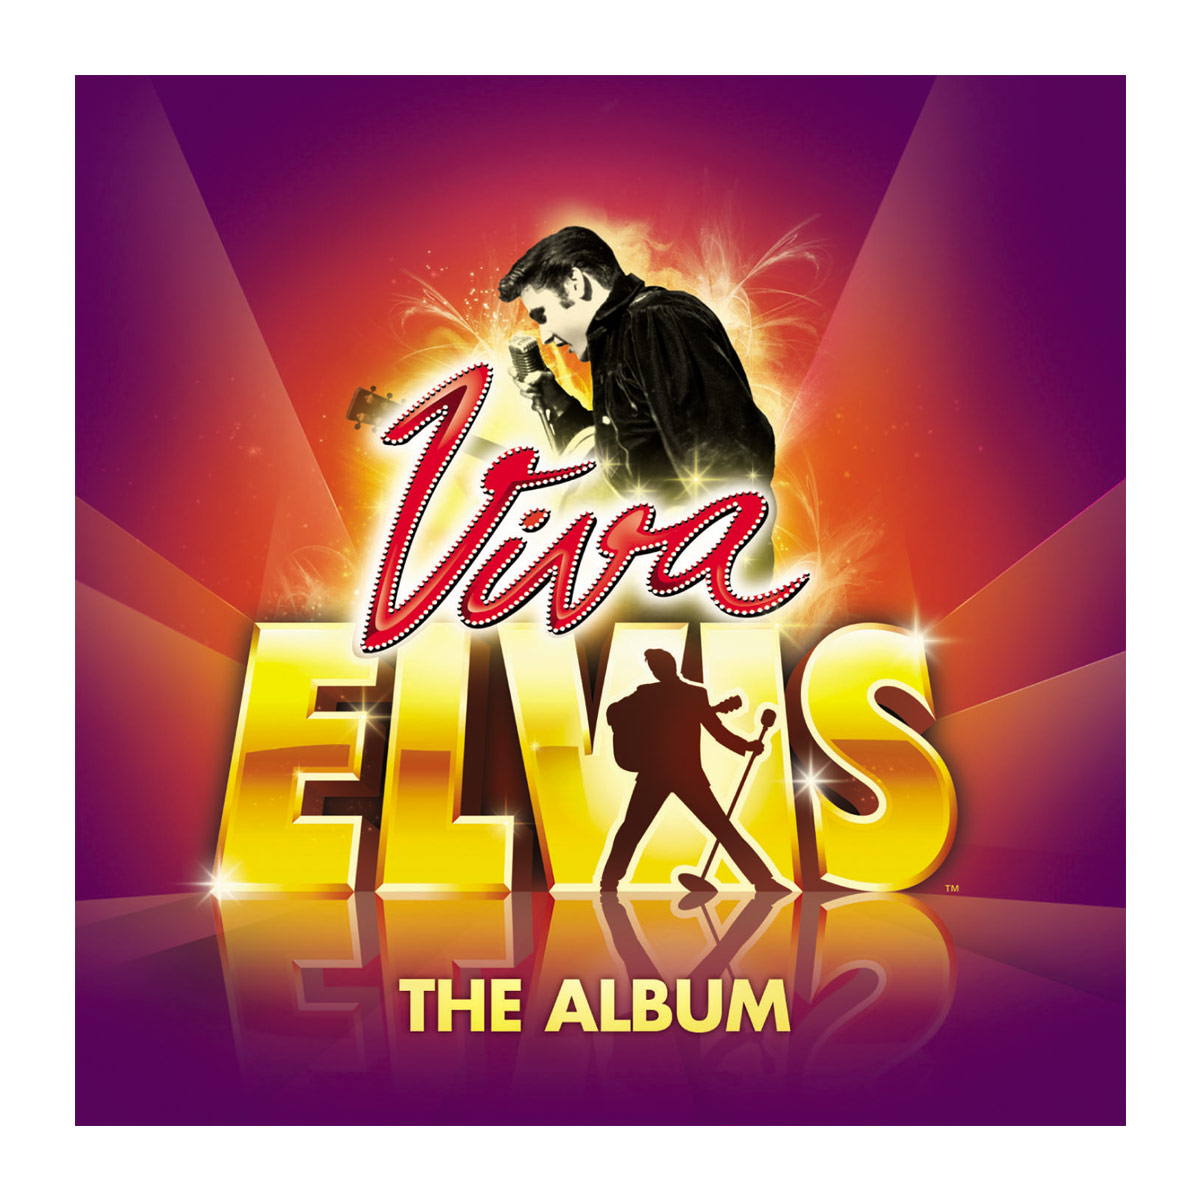 CD Elvis - Viva Elvis The Album